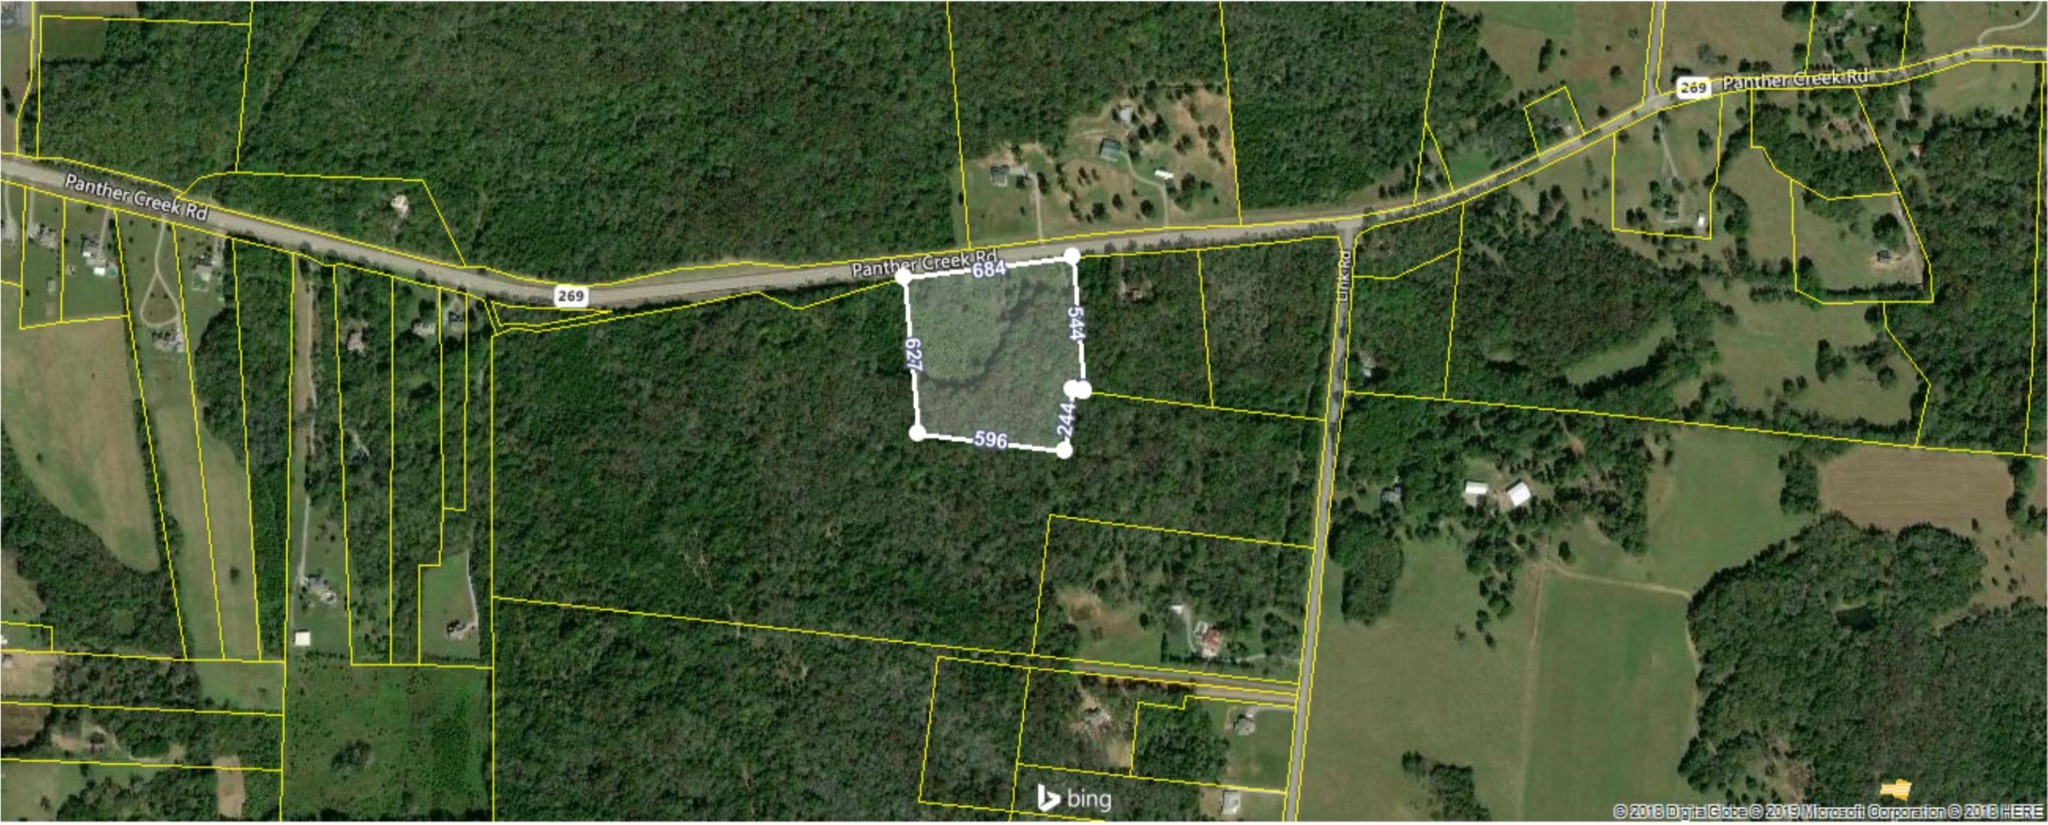 0 Panther Creek Rd Property Photo